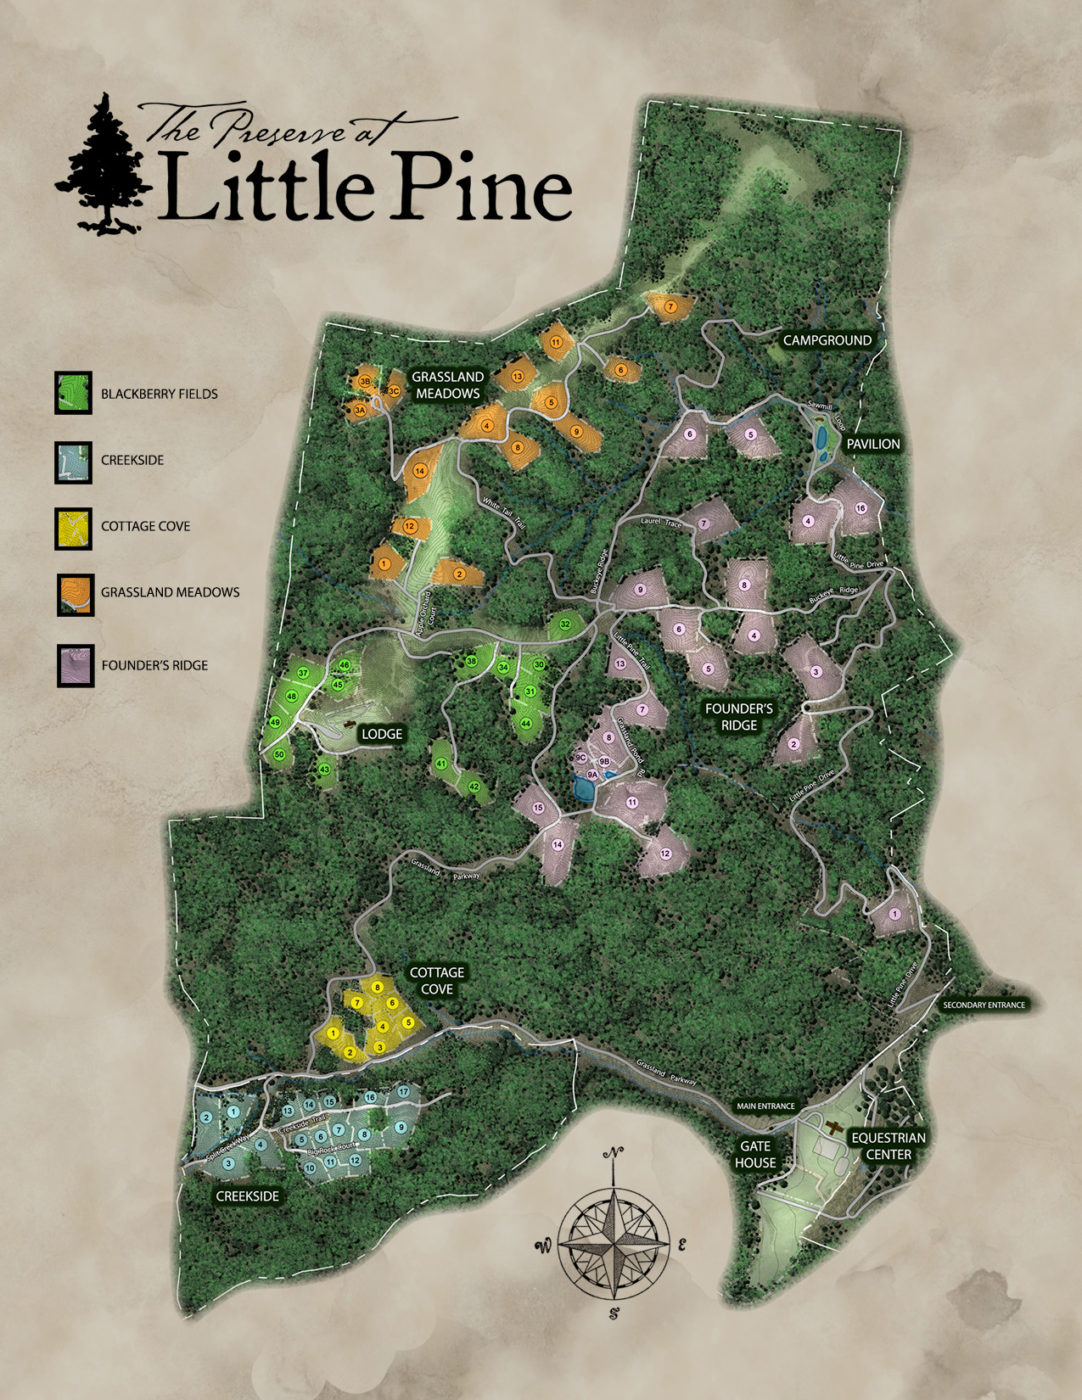 Real Estate for Sale @ The Preserve at Little Pine